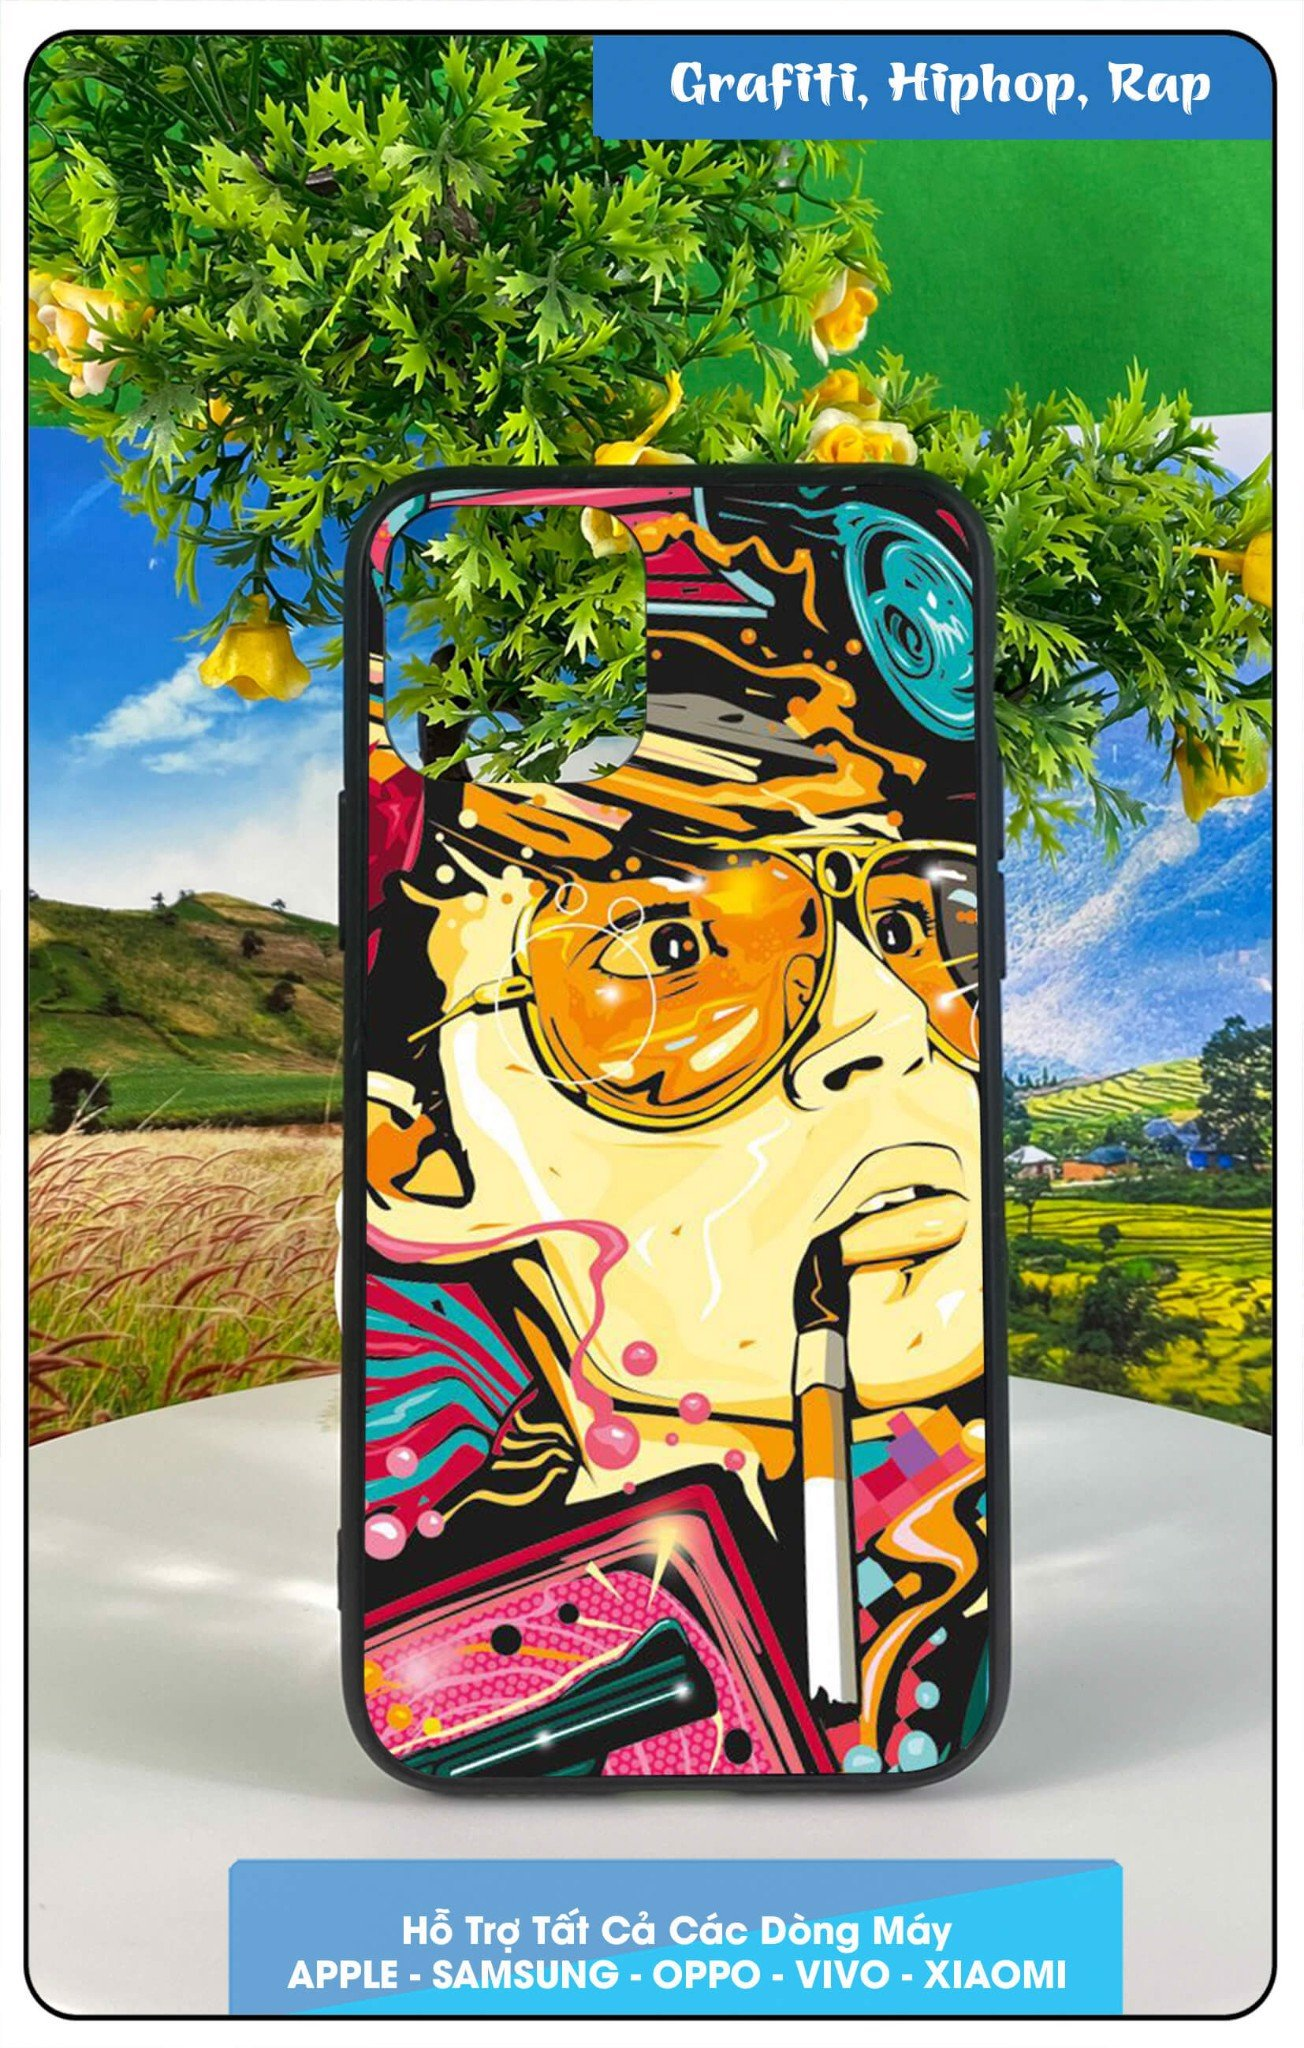 Ốp Iphone 11 promax in hình grafiti, hip-hop, rap